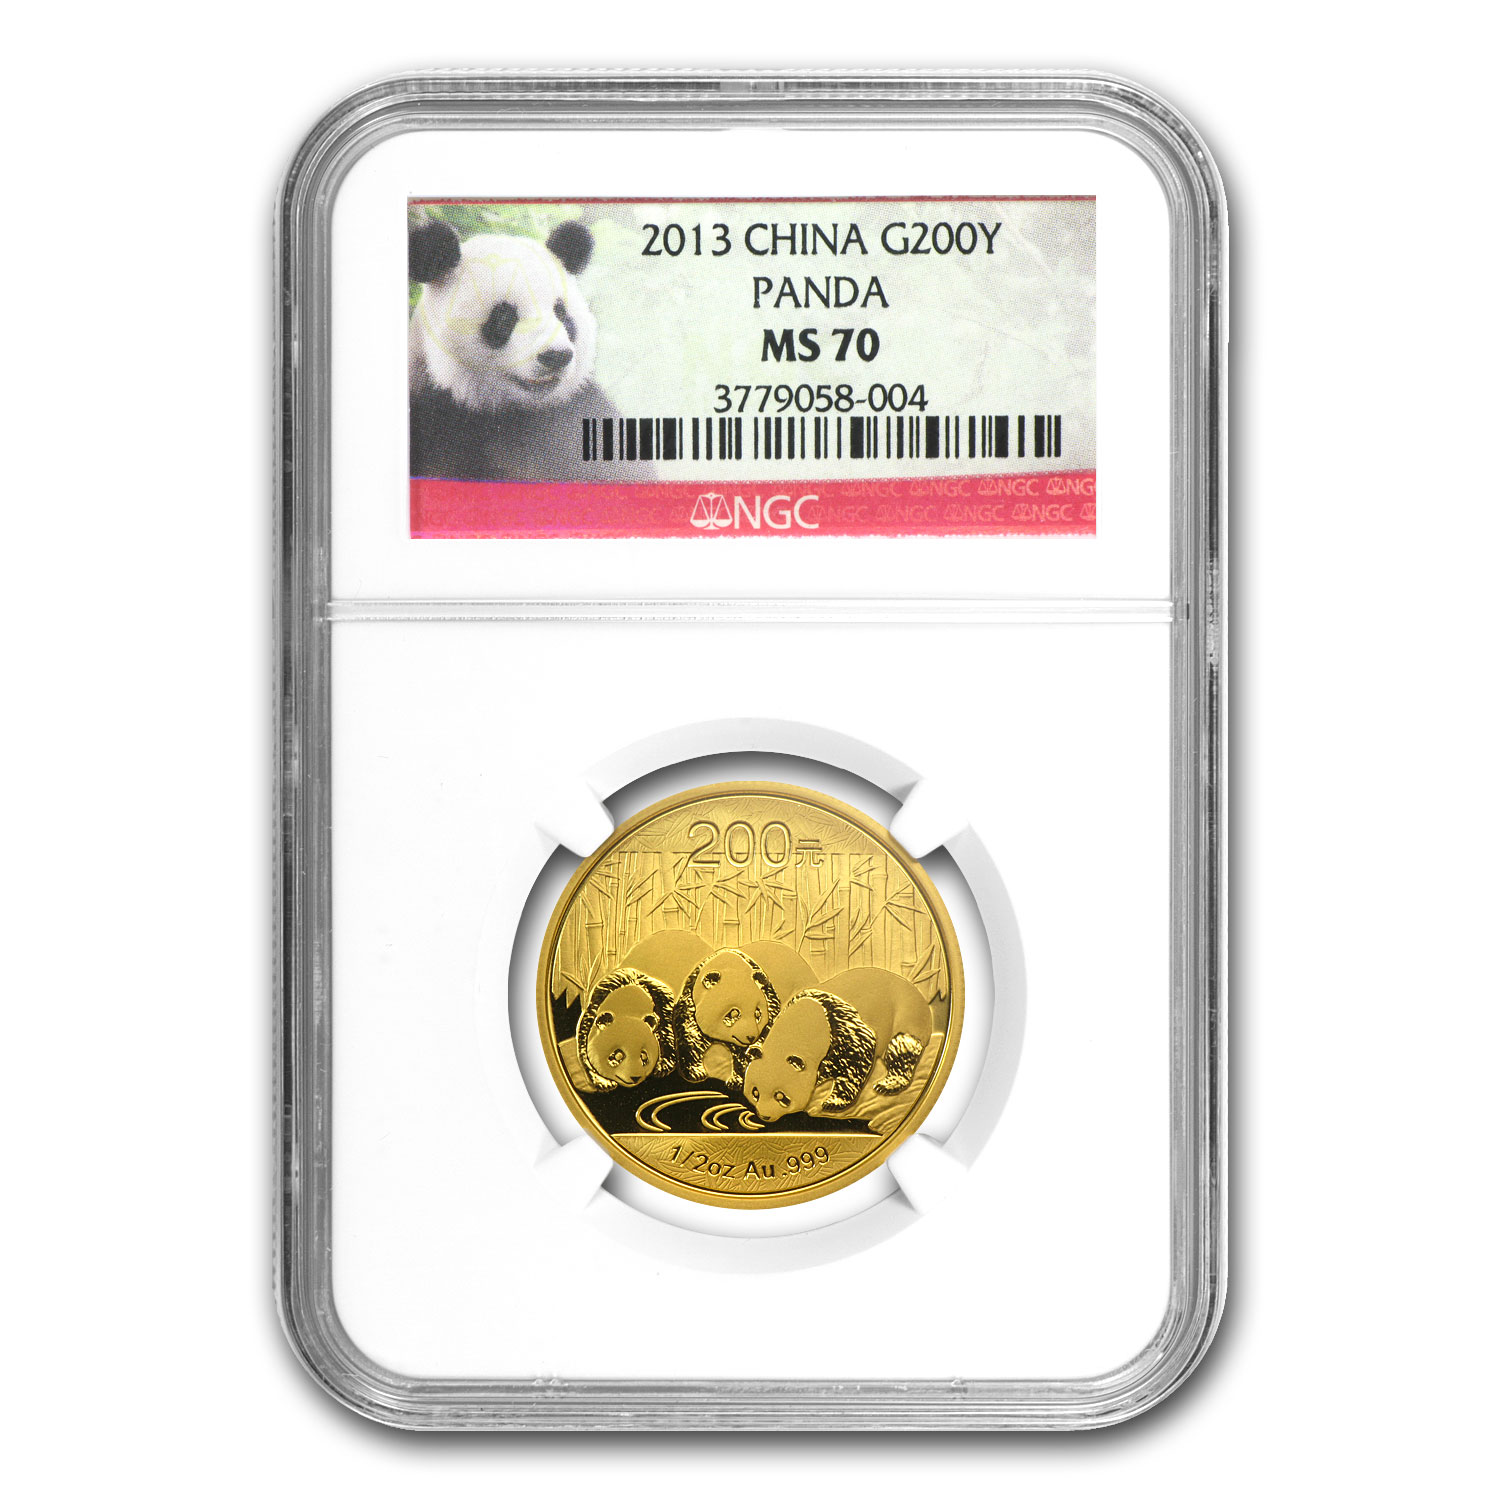 2013 China 1/2 oz Gold Panda MS-70 NGC